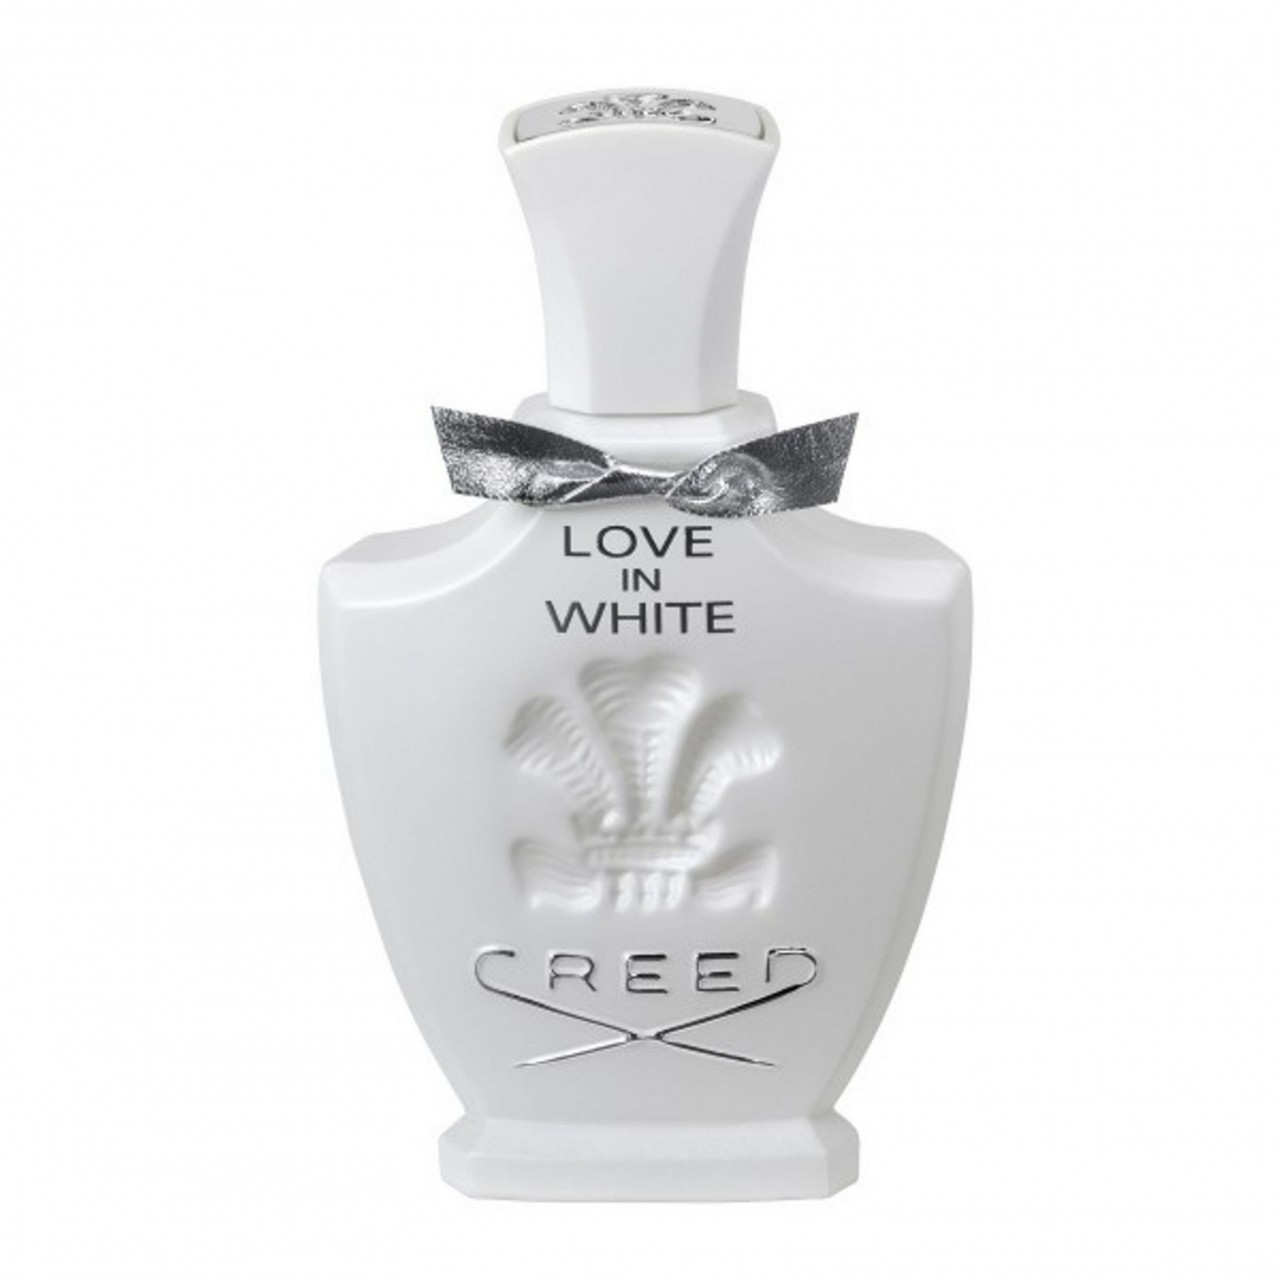 Creed Love In White 75ml Edp Original Perfume For Women Price In